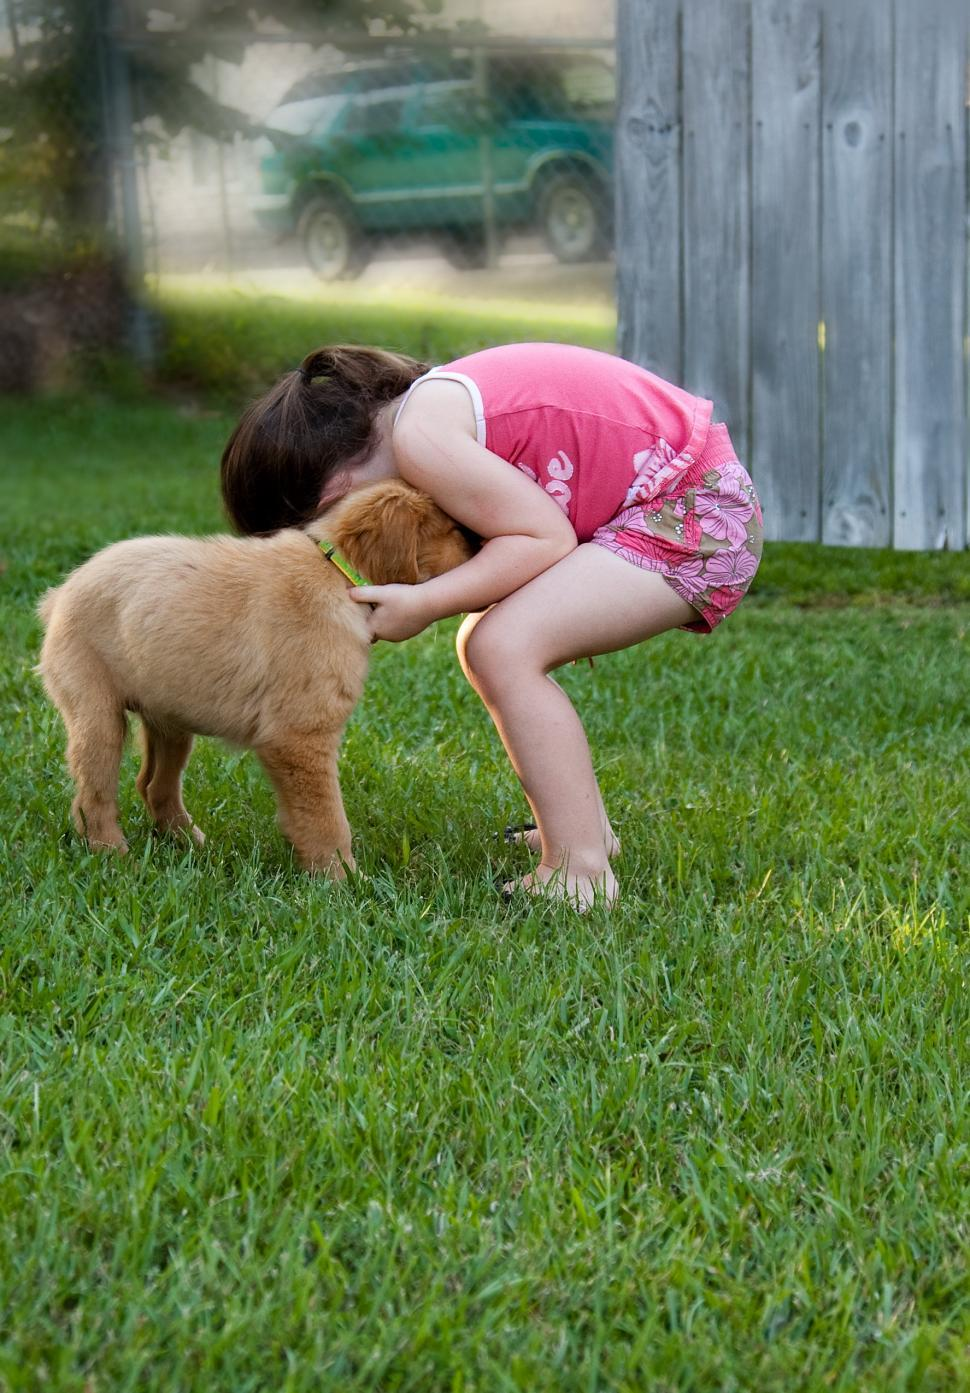 Free stock photo of young girl playing with a golden Retriever